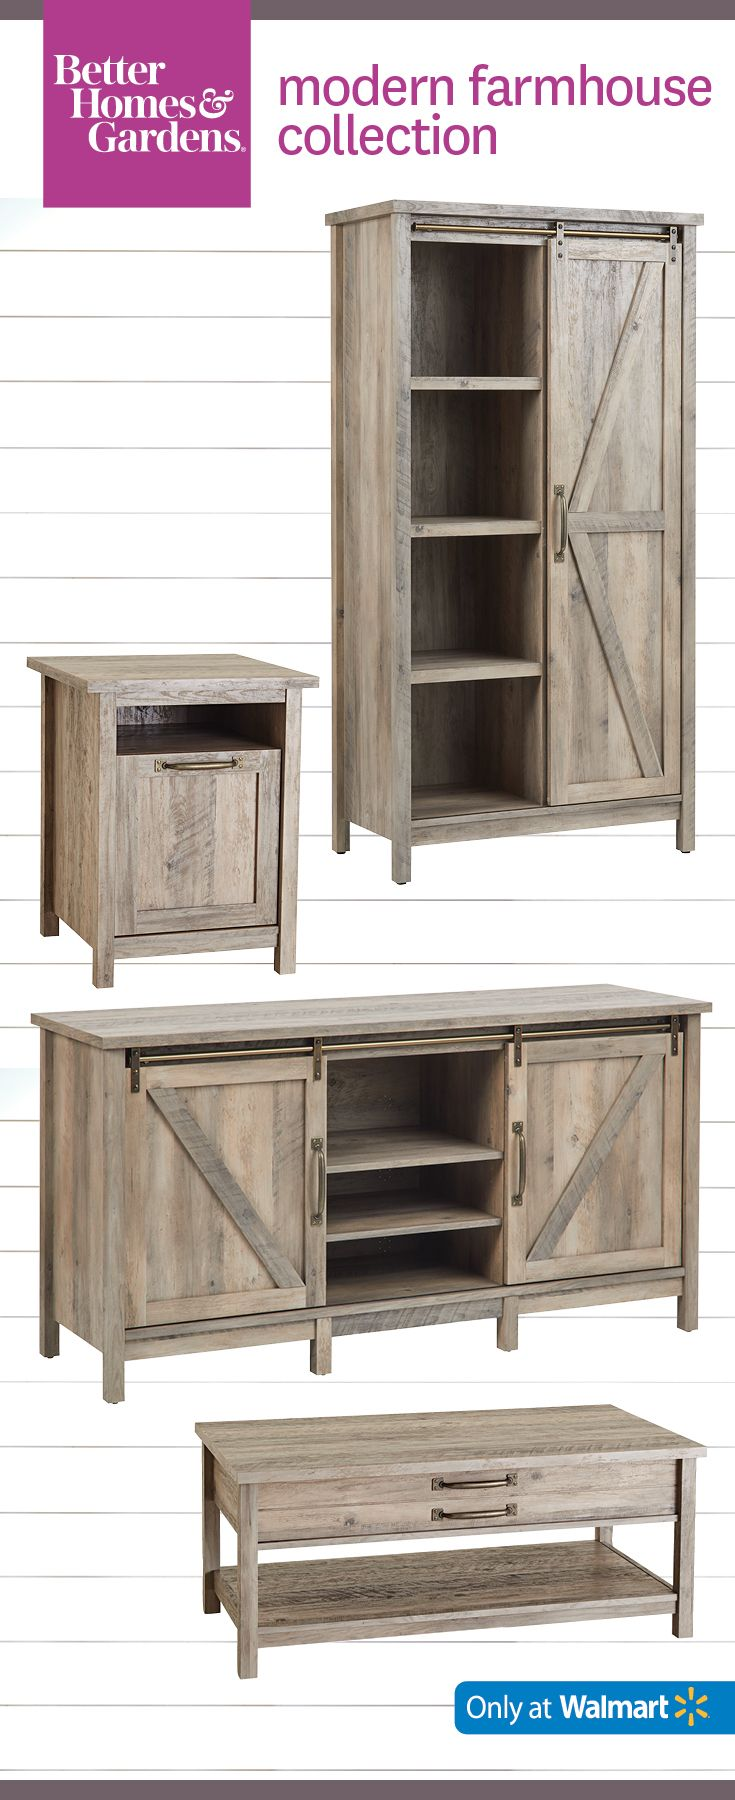 Modern Farmhouse Is This Springu0027s Top #trend! Shop The @bhg Modern  Farmhouse Collection